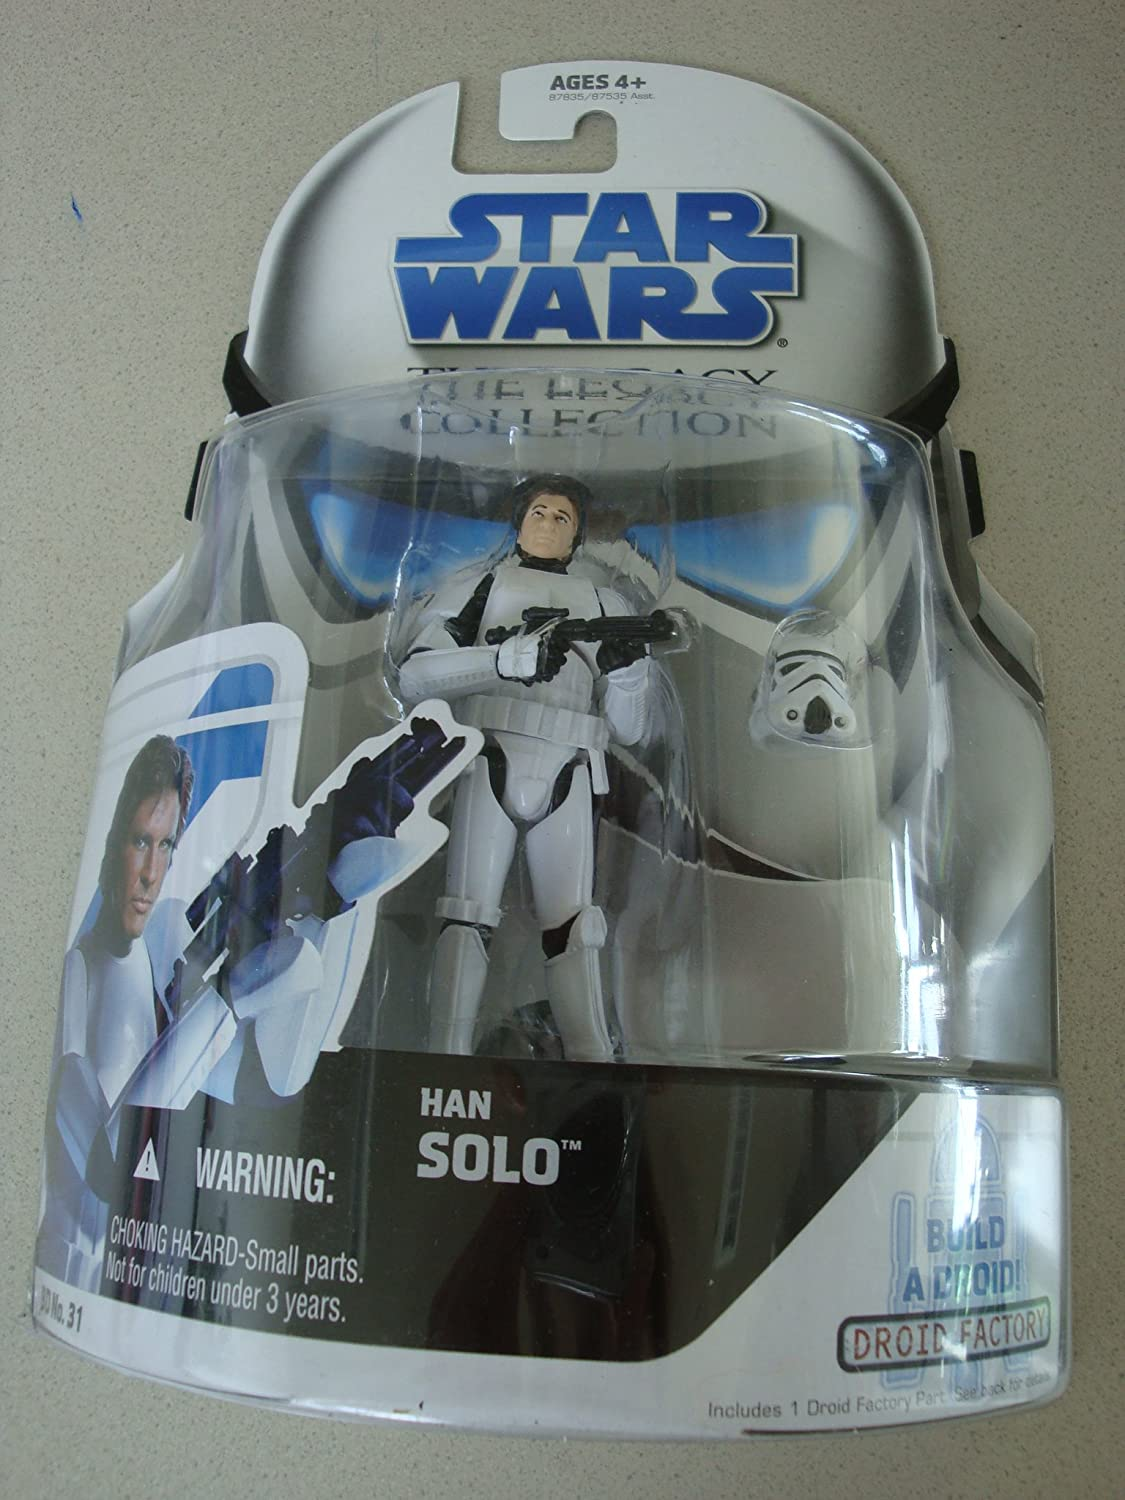 Pick 1 or More STAR WARS BUILD-A-DROID ASTROMECH PARTS THE LEGACY COLLECTION